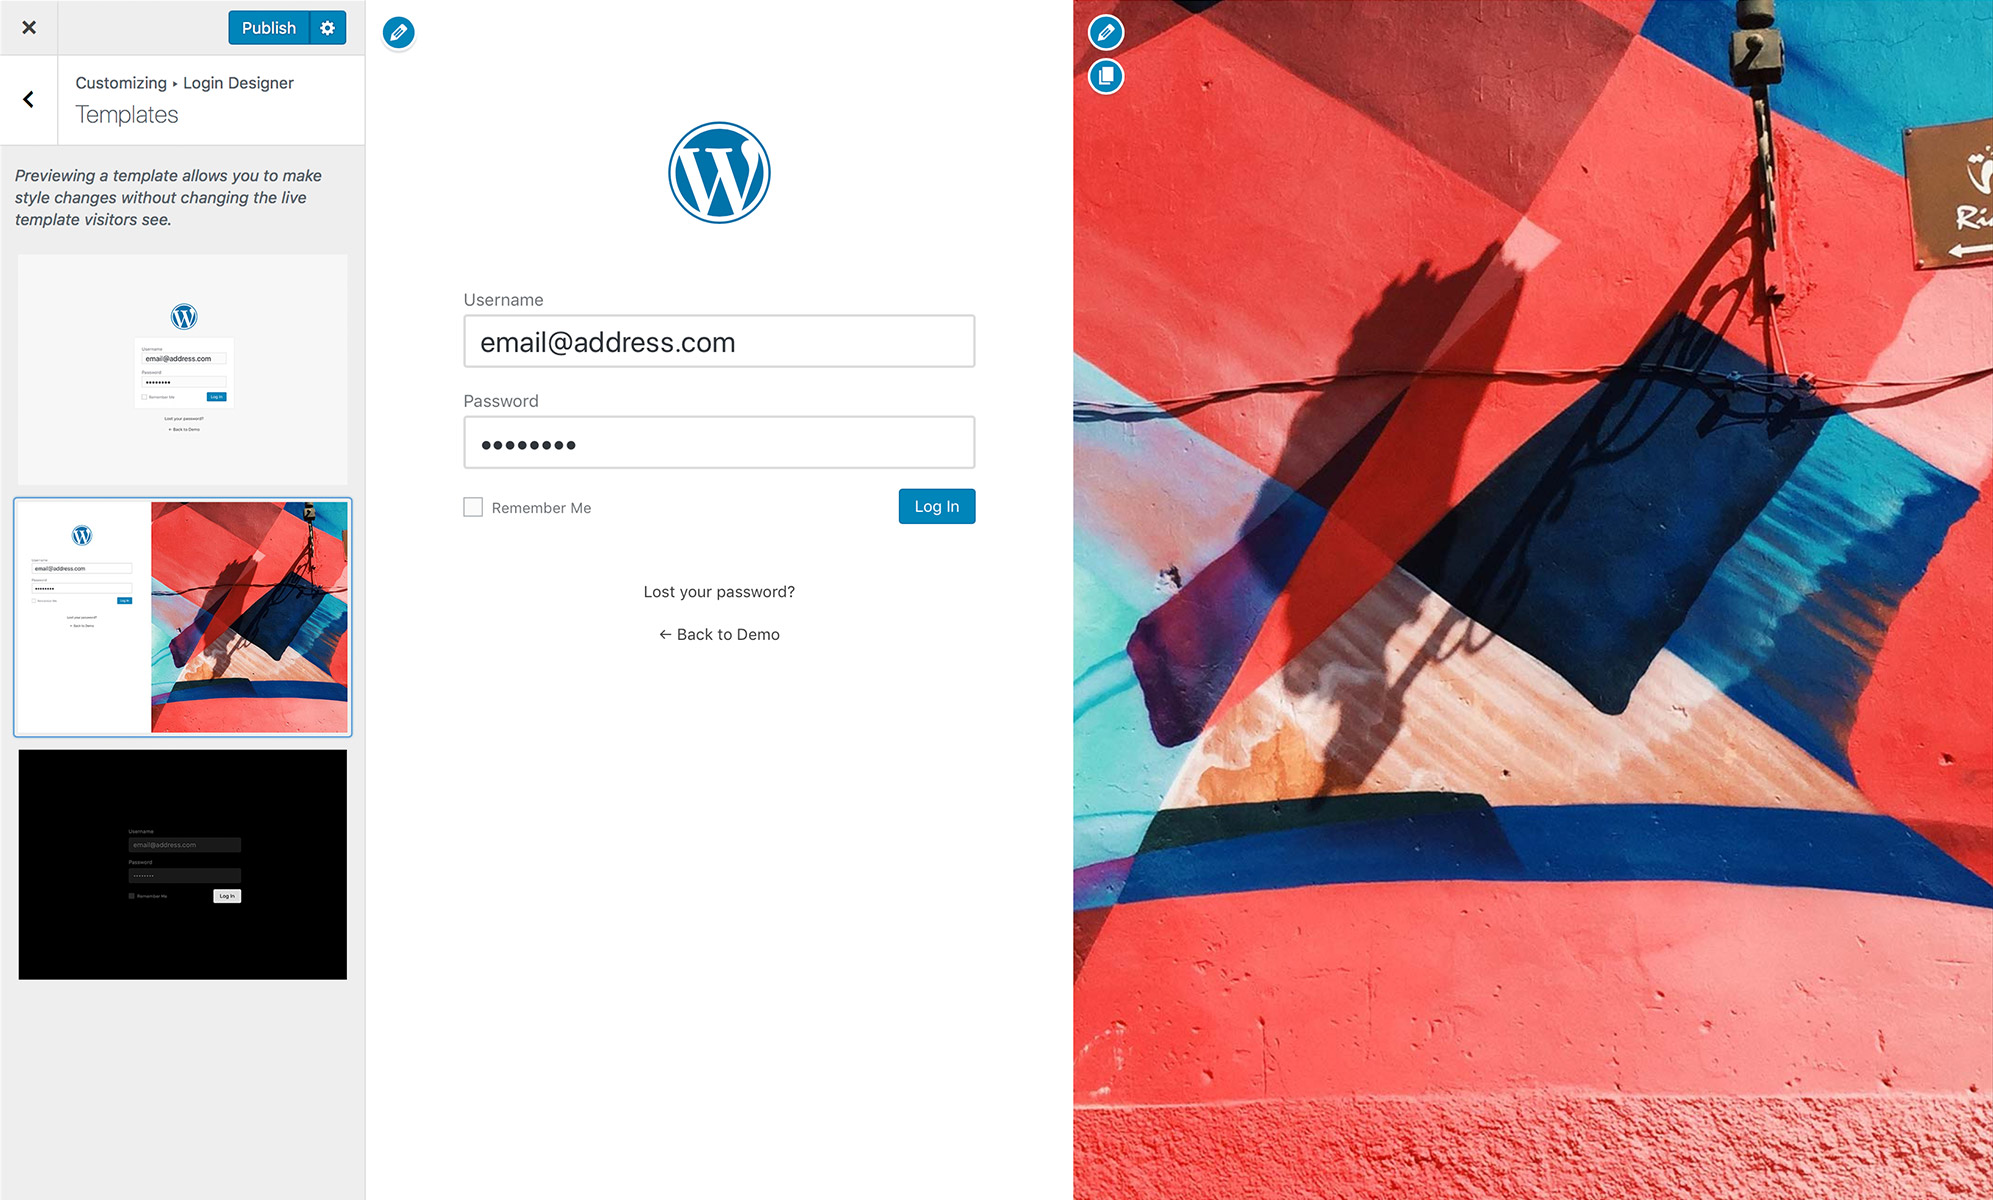 Change the backdrop of your login page using Custom Login Page Customizer